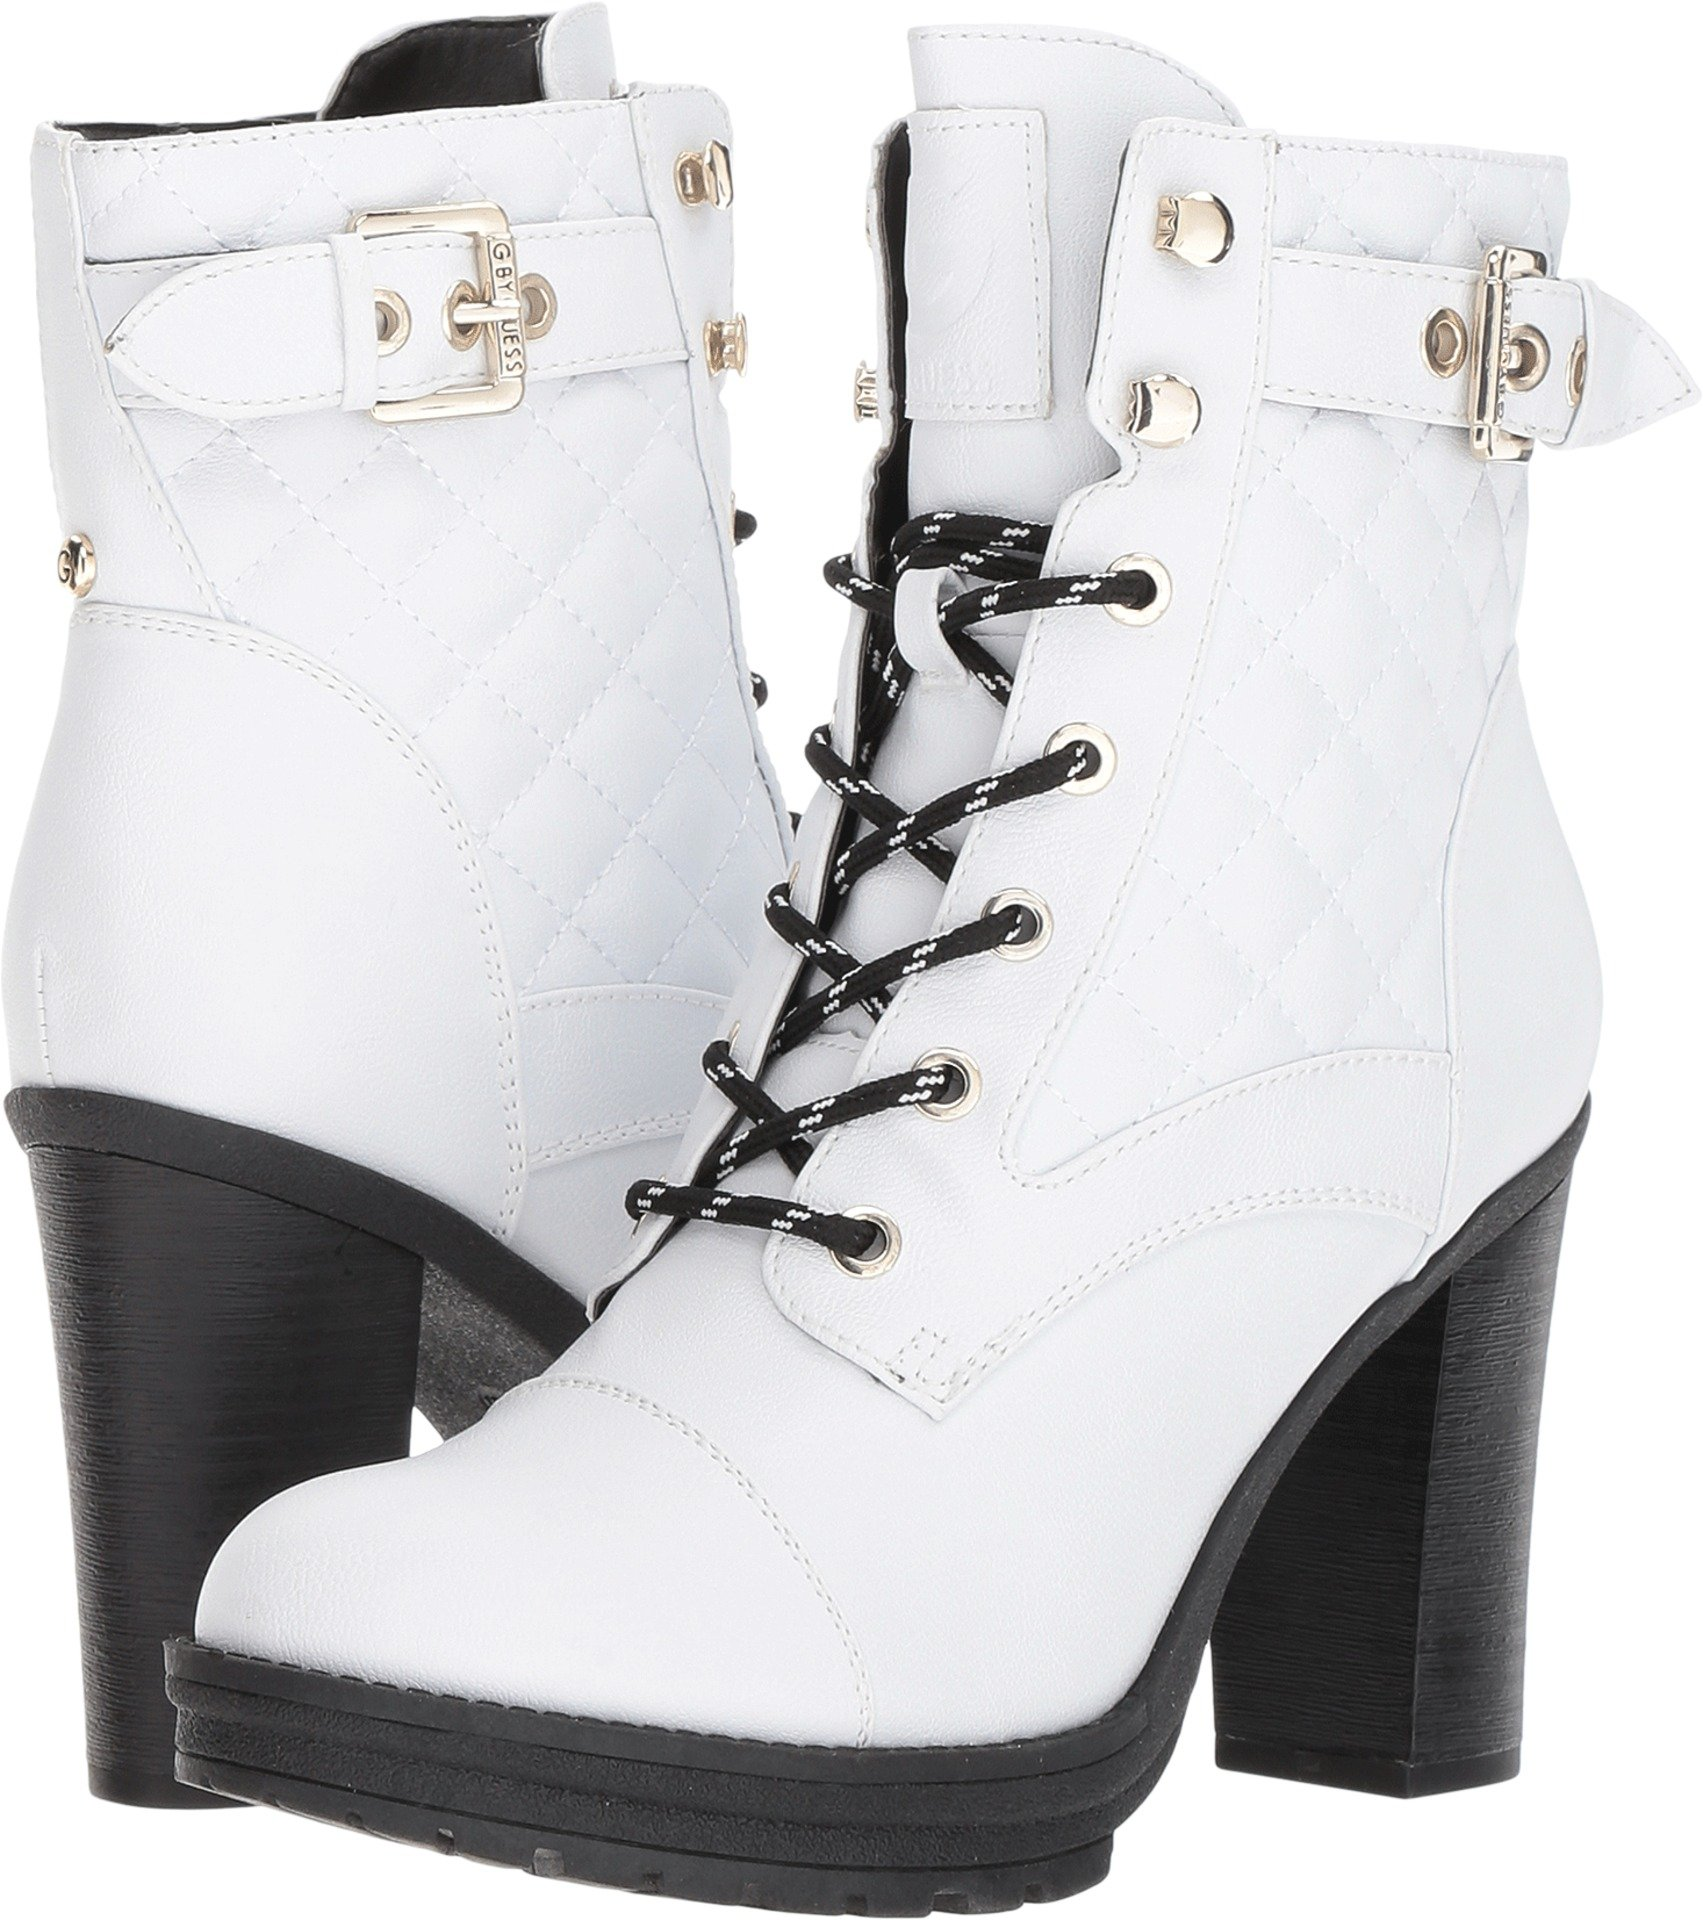 G by GUESS Womens Gift2 Almond Toe Ankle Fashion Boots, White, Size 6.5